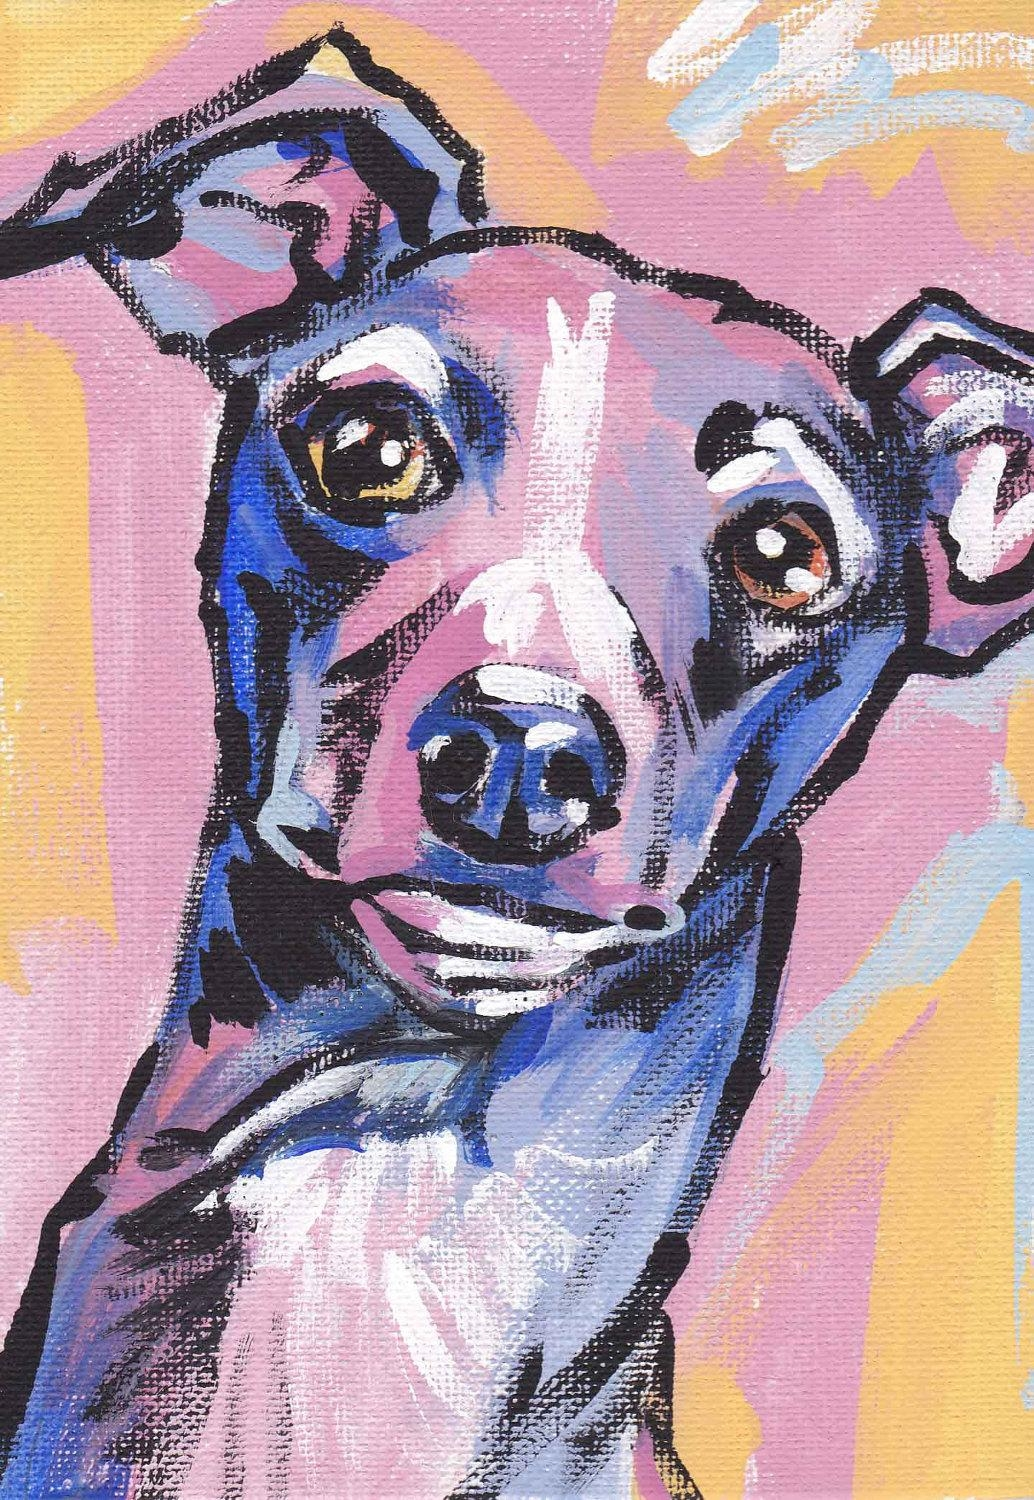 Italian Greyhound Art Print Dog Pop Art Bright Colors Intended For Italian Greyhound Wall Art (Image 12 of 20)